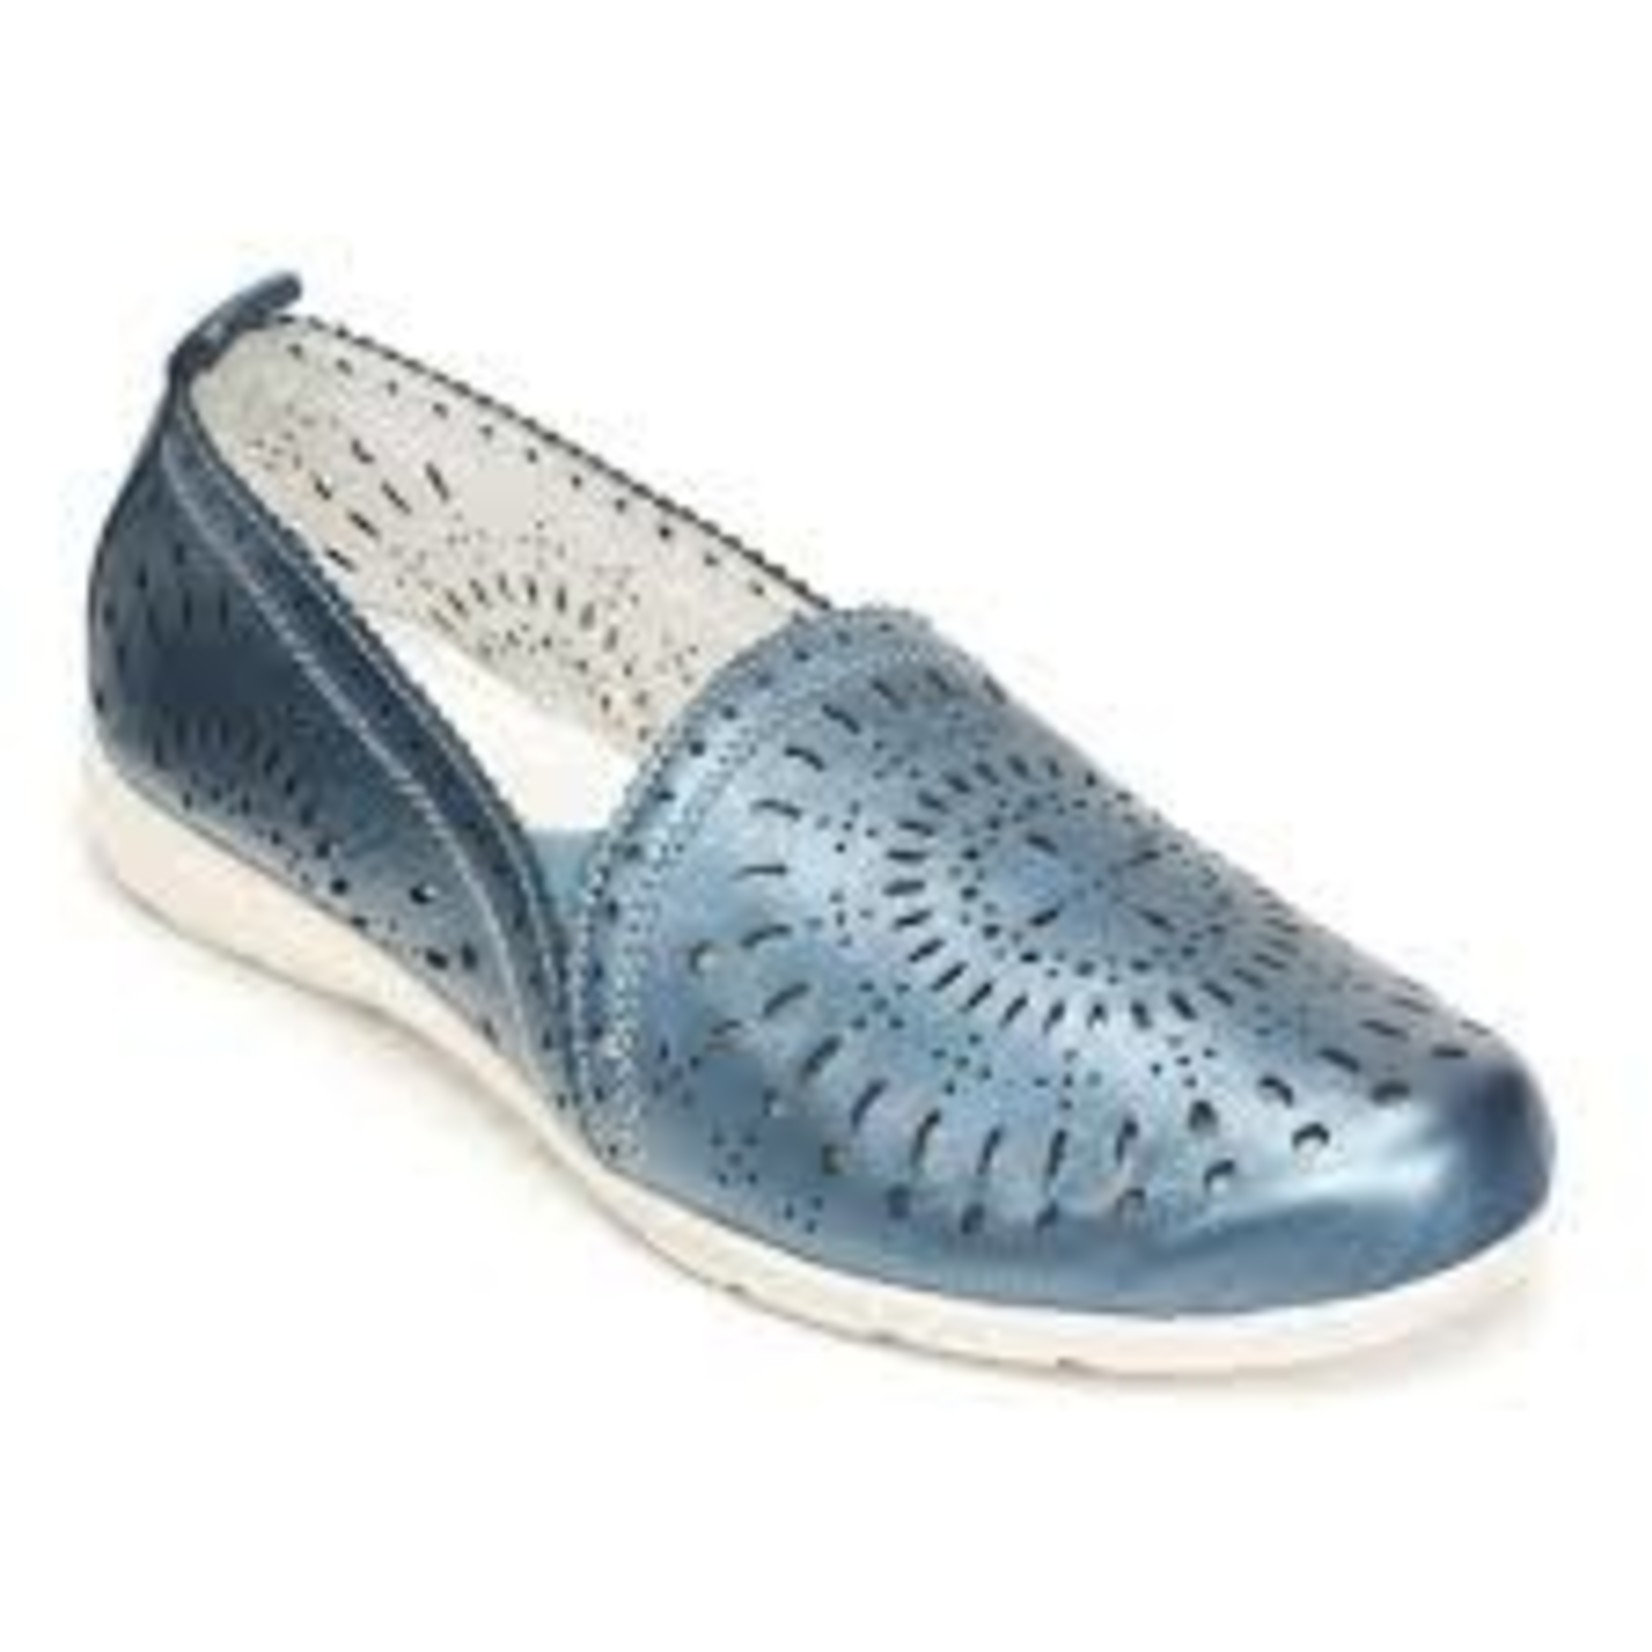 Remonte Remonte D1927-14 only size 36